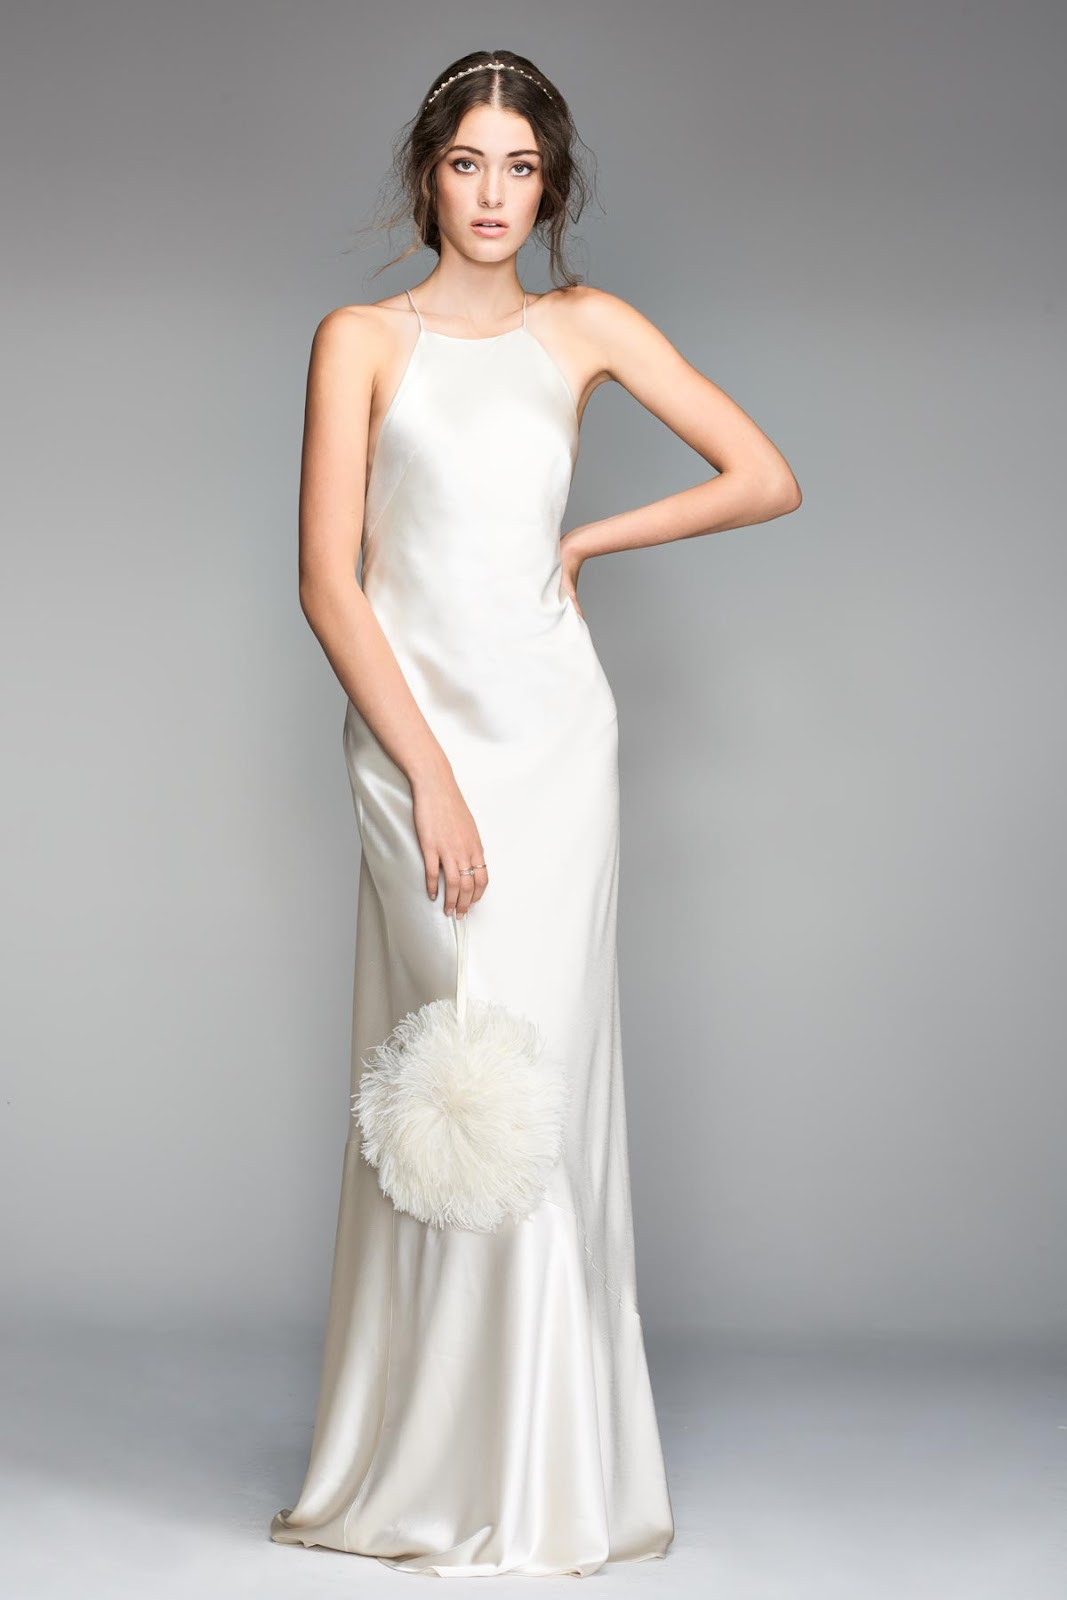 Miss Ruby Boutique: Our Favorite Sleek & Simple Bridal Gowns